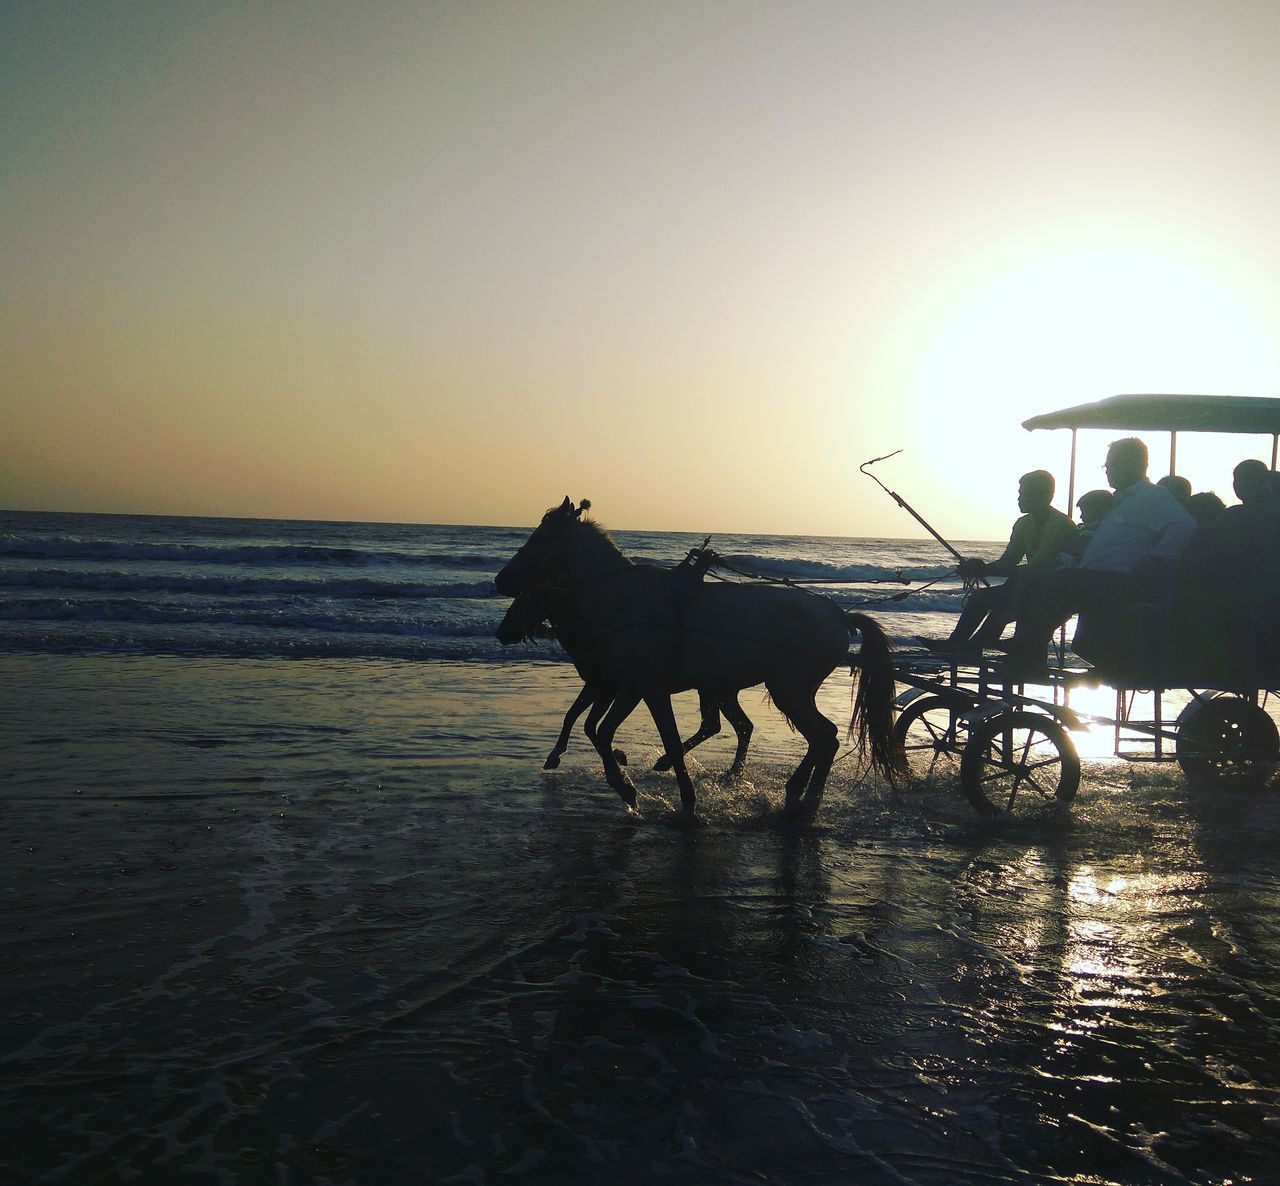 sea, horse, sunset, working animal, water, domestic animals, riding, nature, men, silhouette, horizon over water, beach, transportation, real people, beauty in nature, horseback riding, clear sky, outdoors, mammal, sky, scenics, horse cart, sand, full length, one person, day, people